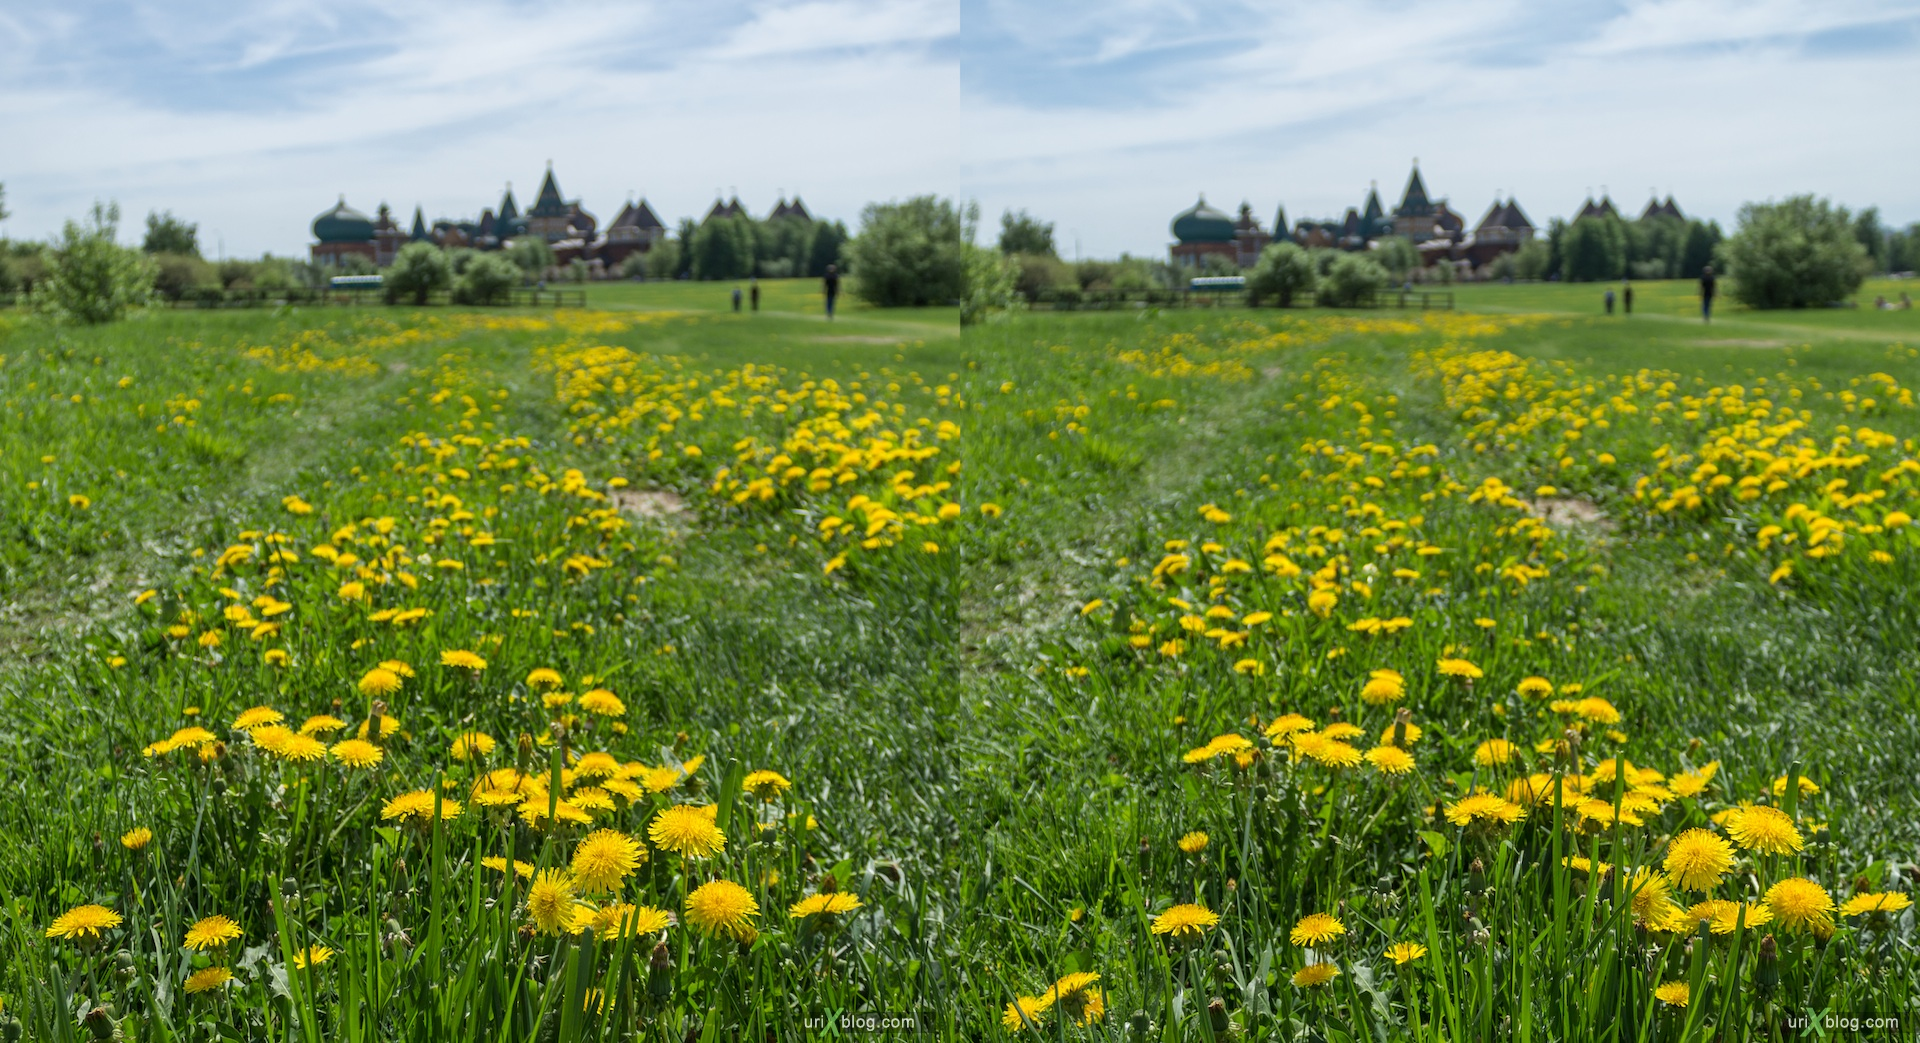 2013, dandelion, flower, grass, park, field, Moscow, Russia, spring, 3D, stereo pair, cross-eyed, crossview, cross view stereo pair, stereoscopic